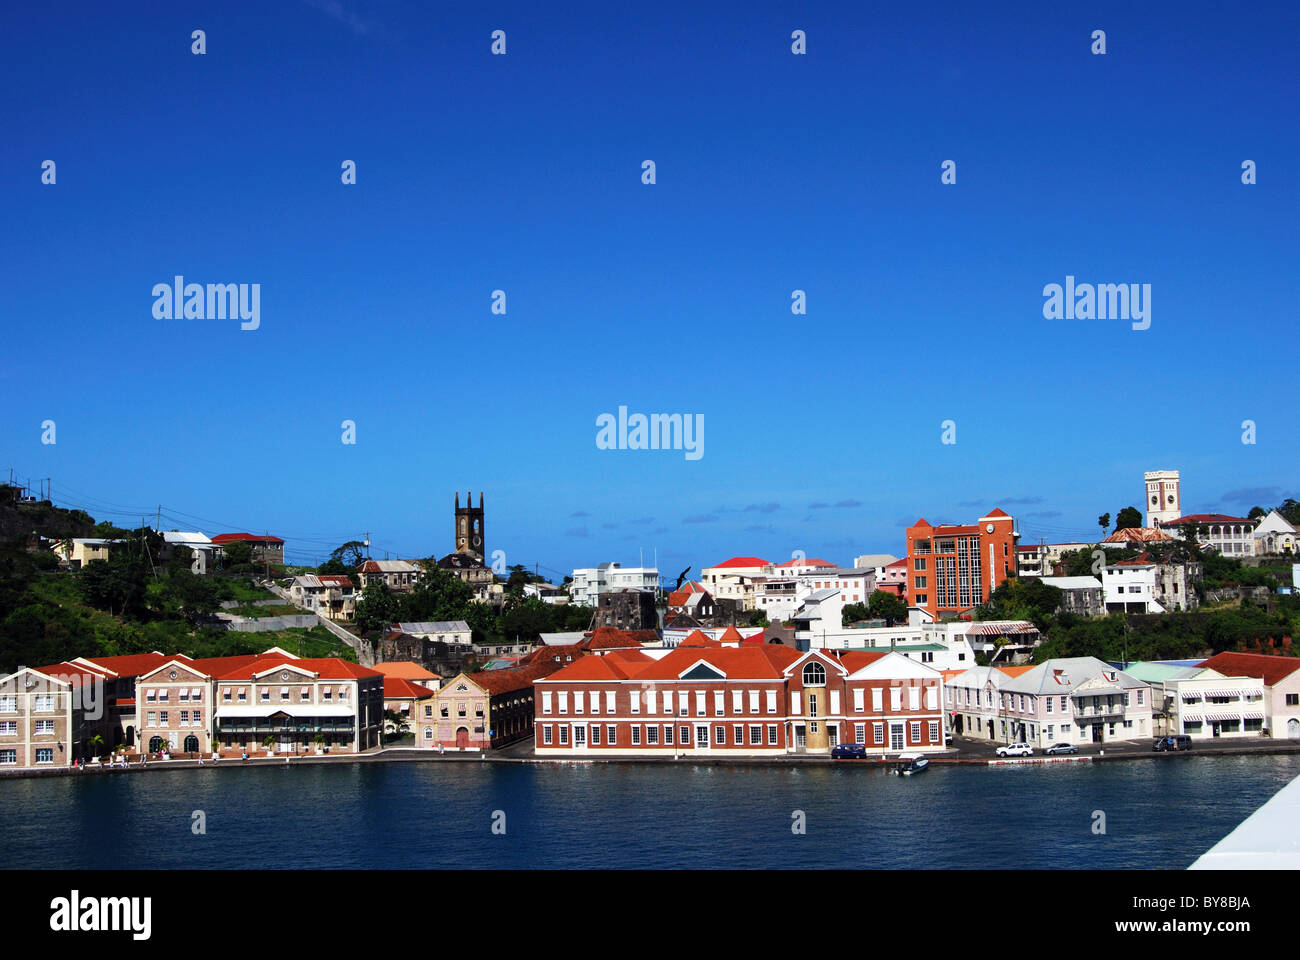 View of the town and coastline, St. George's, Grenada, Caribbean. Stock Photo